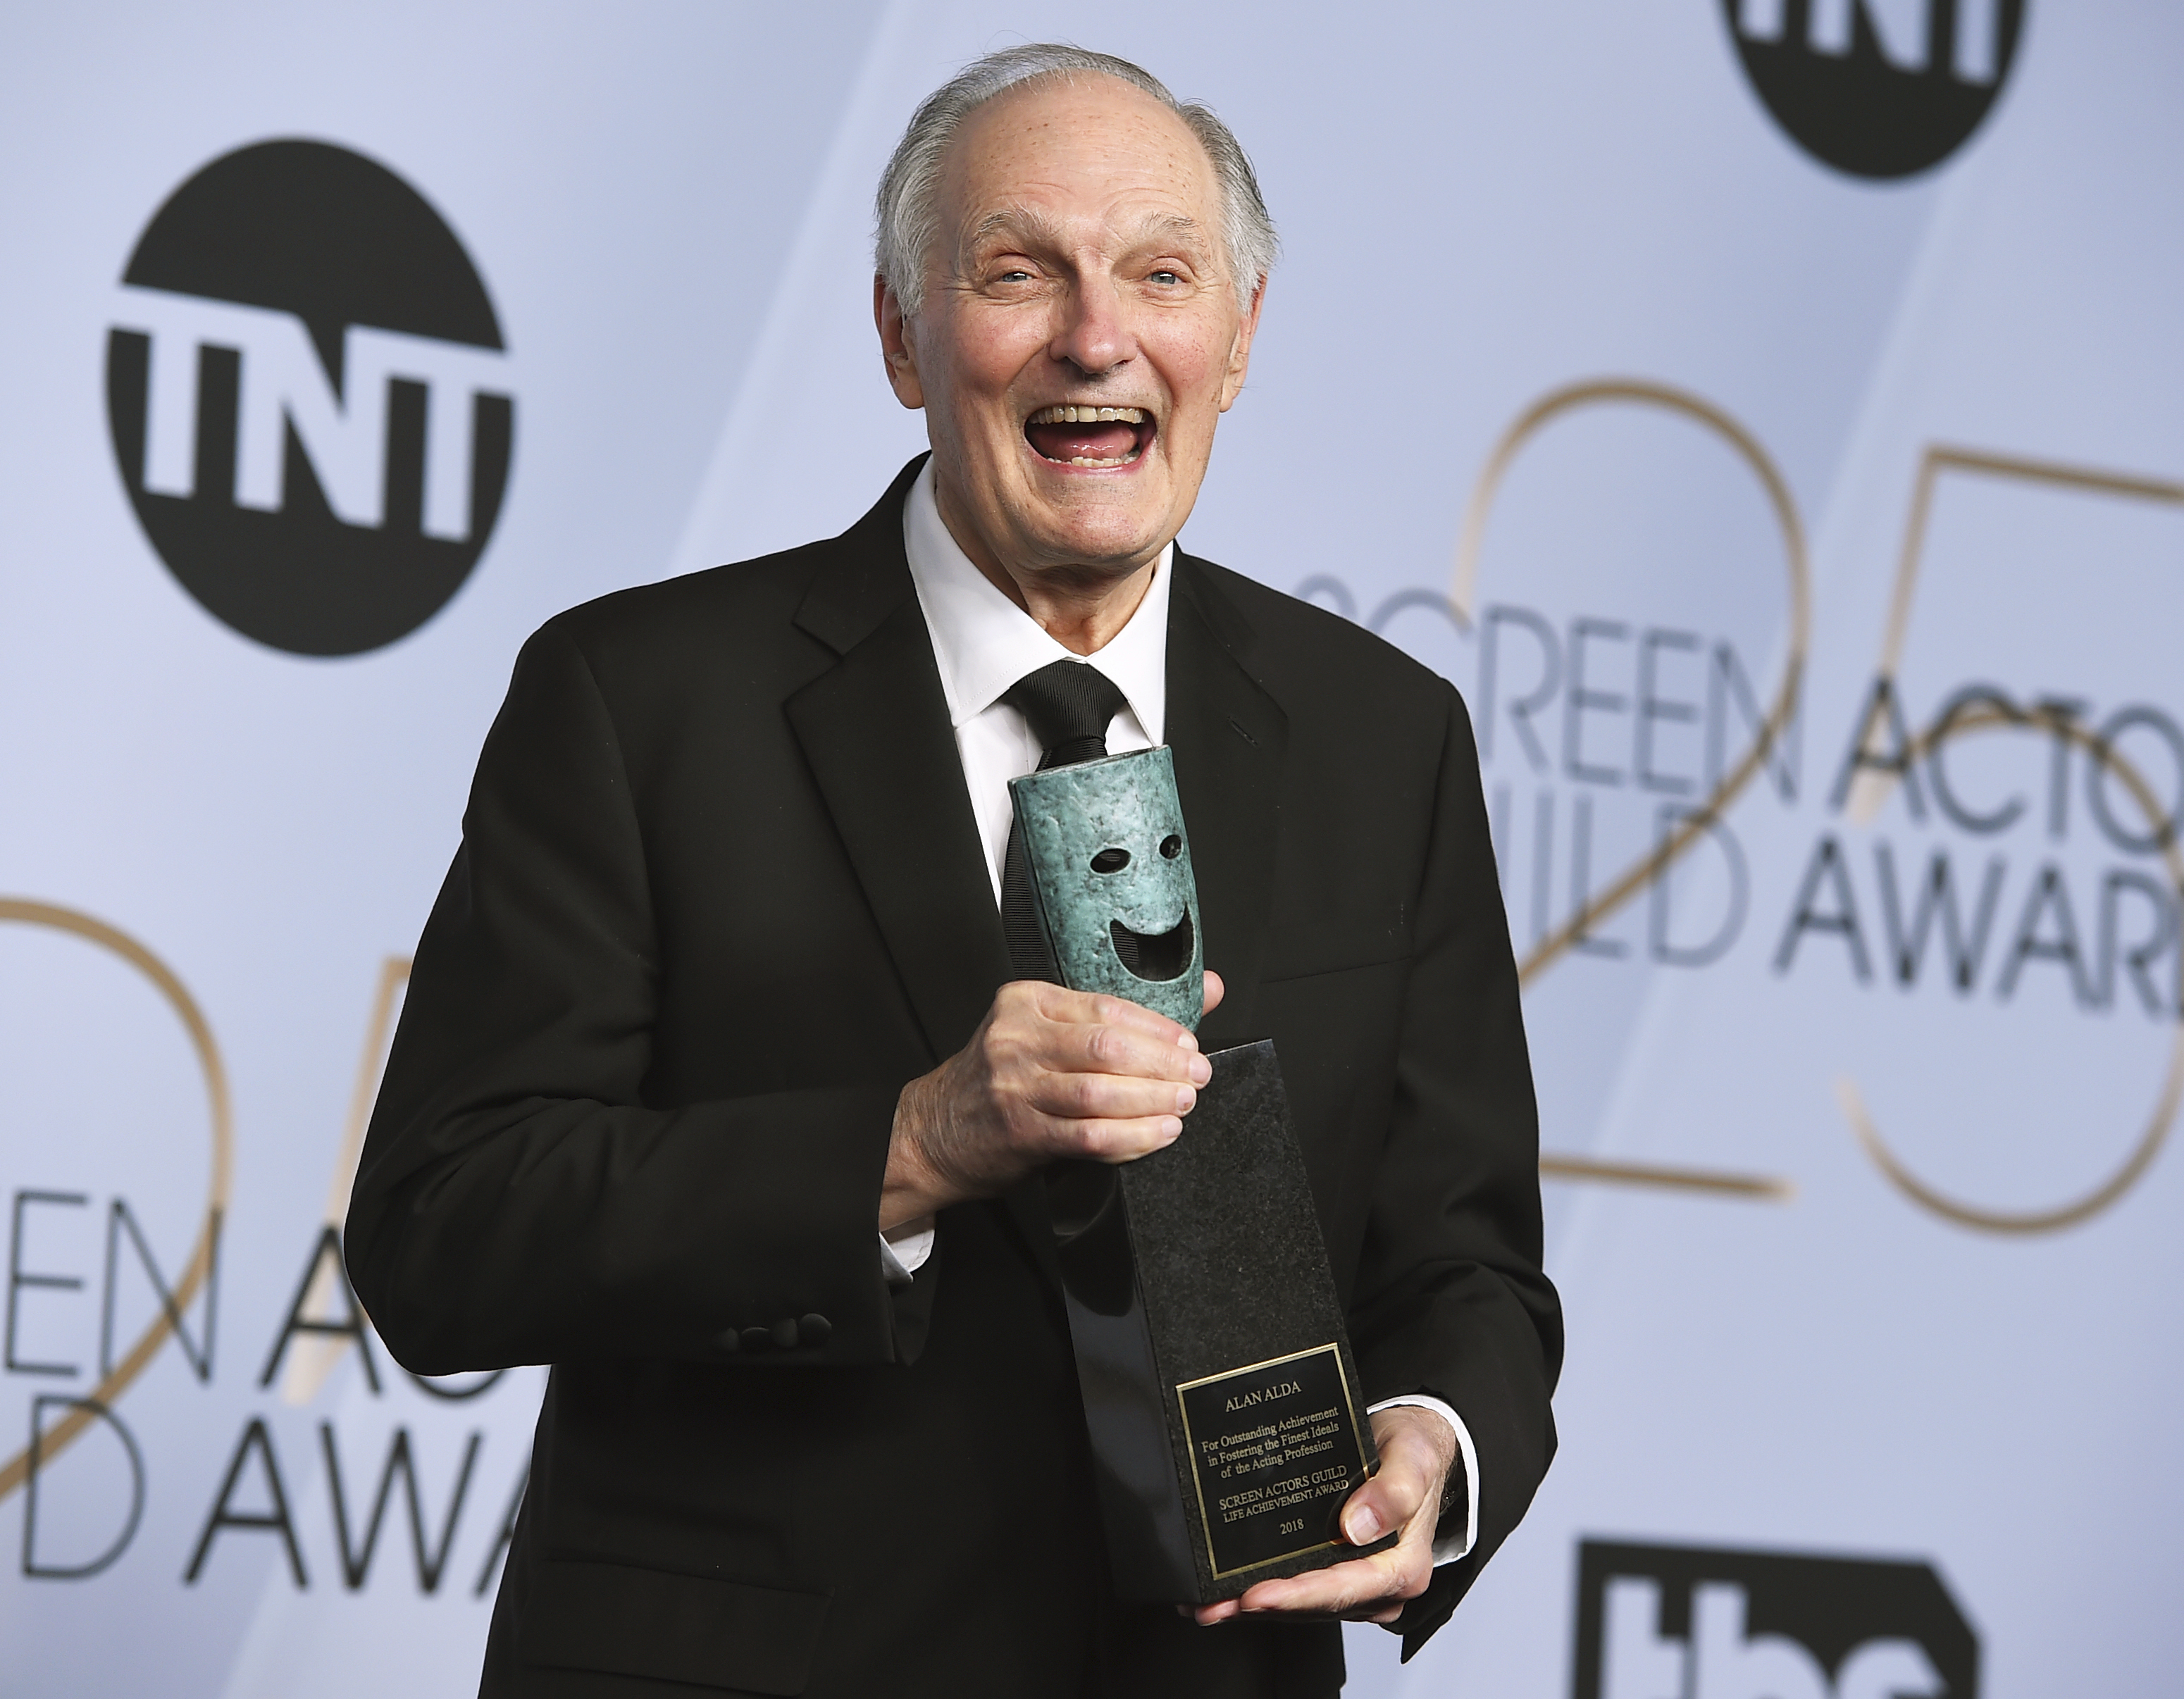 Alan Alda poses with the Life Achievement Award in the press room at the 25th annual Screen Actors Guild Awards at the Shrine Auditorium & Expo Hall on Sunday, Jan. 27, 2019, in Los Angeles. (Photo by Jordan Strauss/Invision/AP)